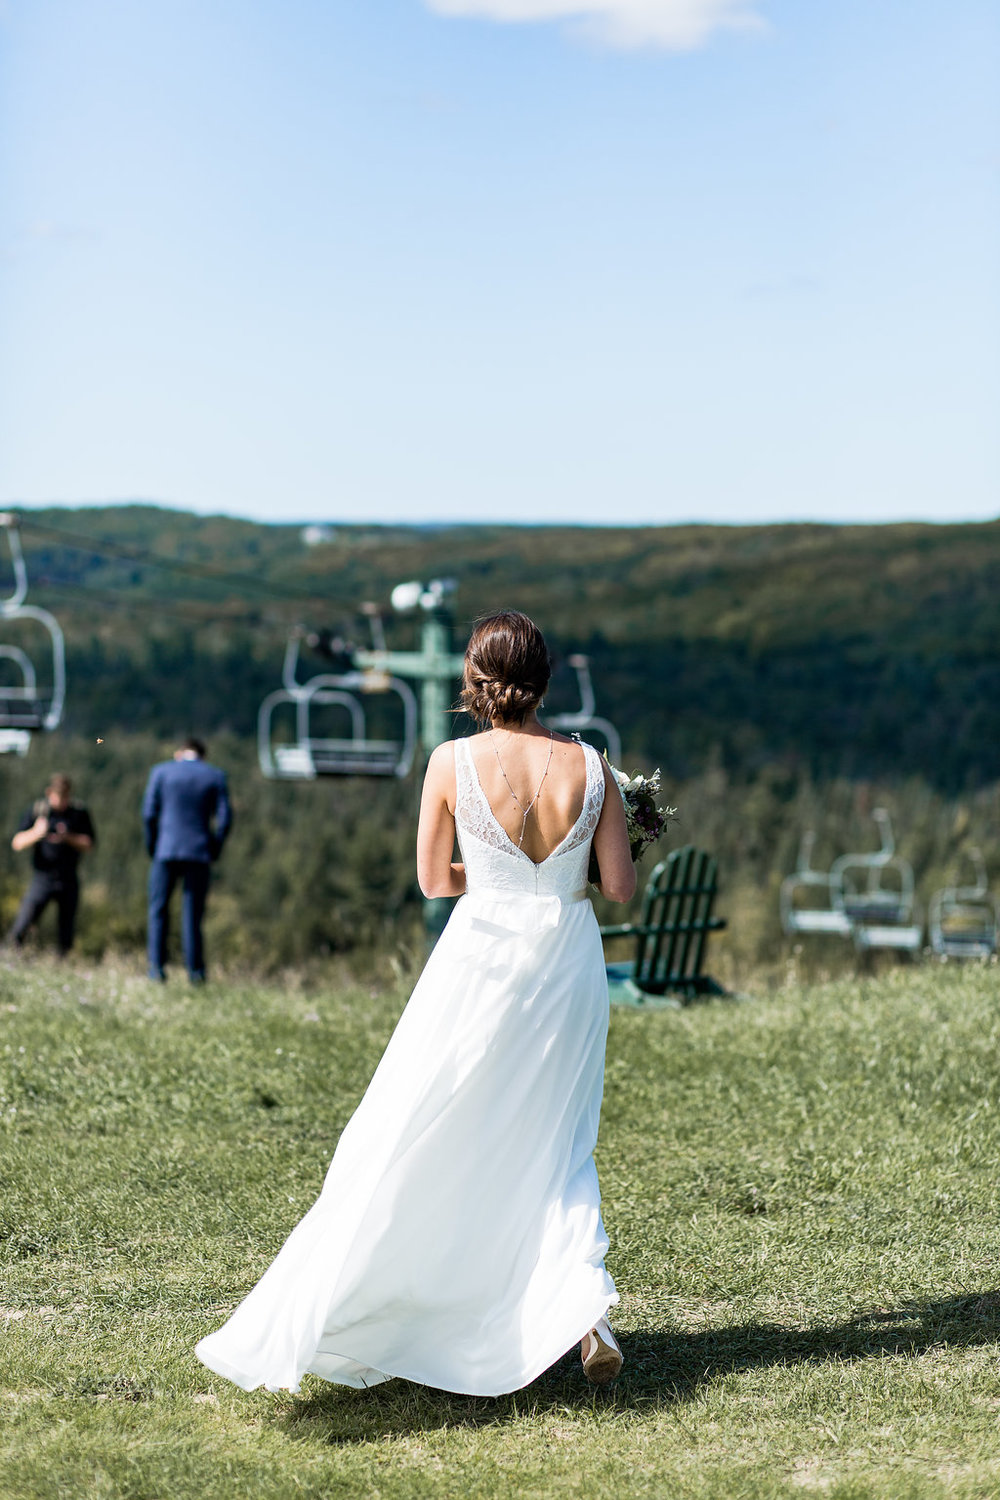 Sonshine_barn_northern_michigan_wedding_-34.jpg